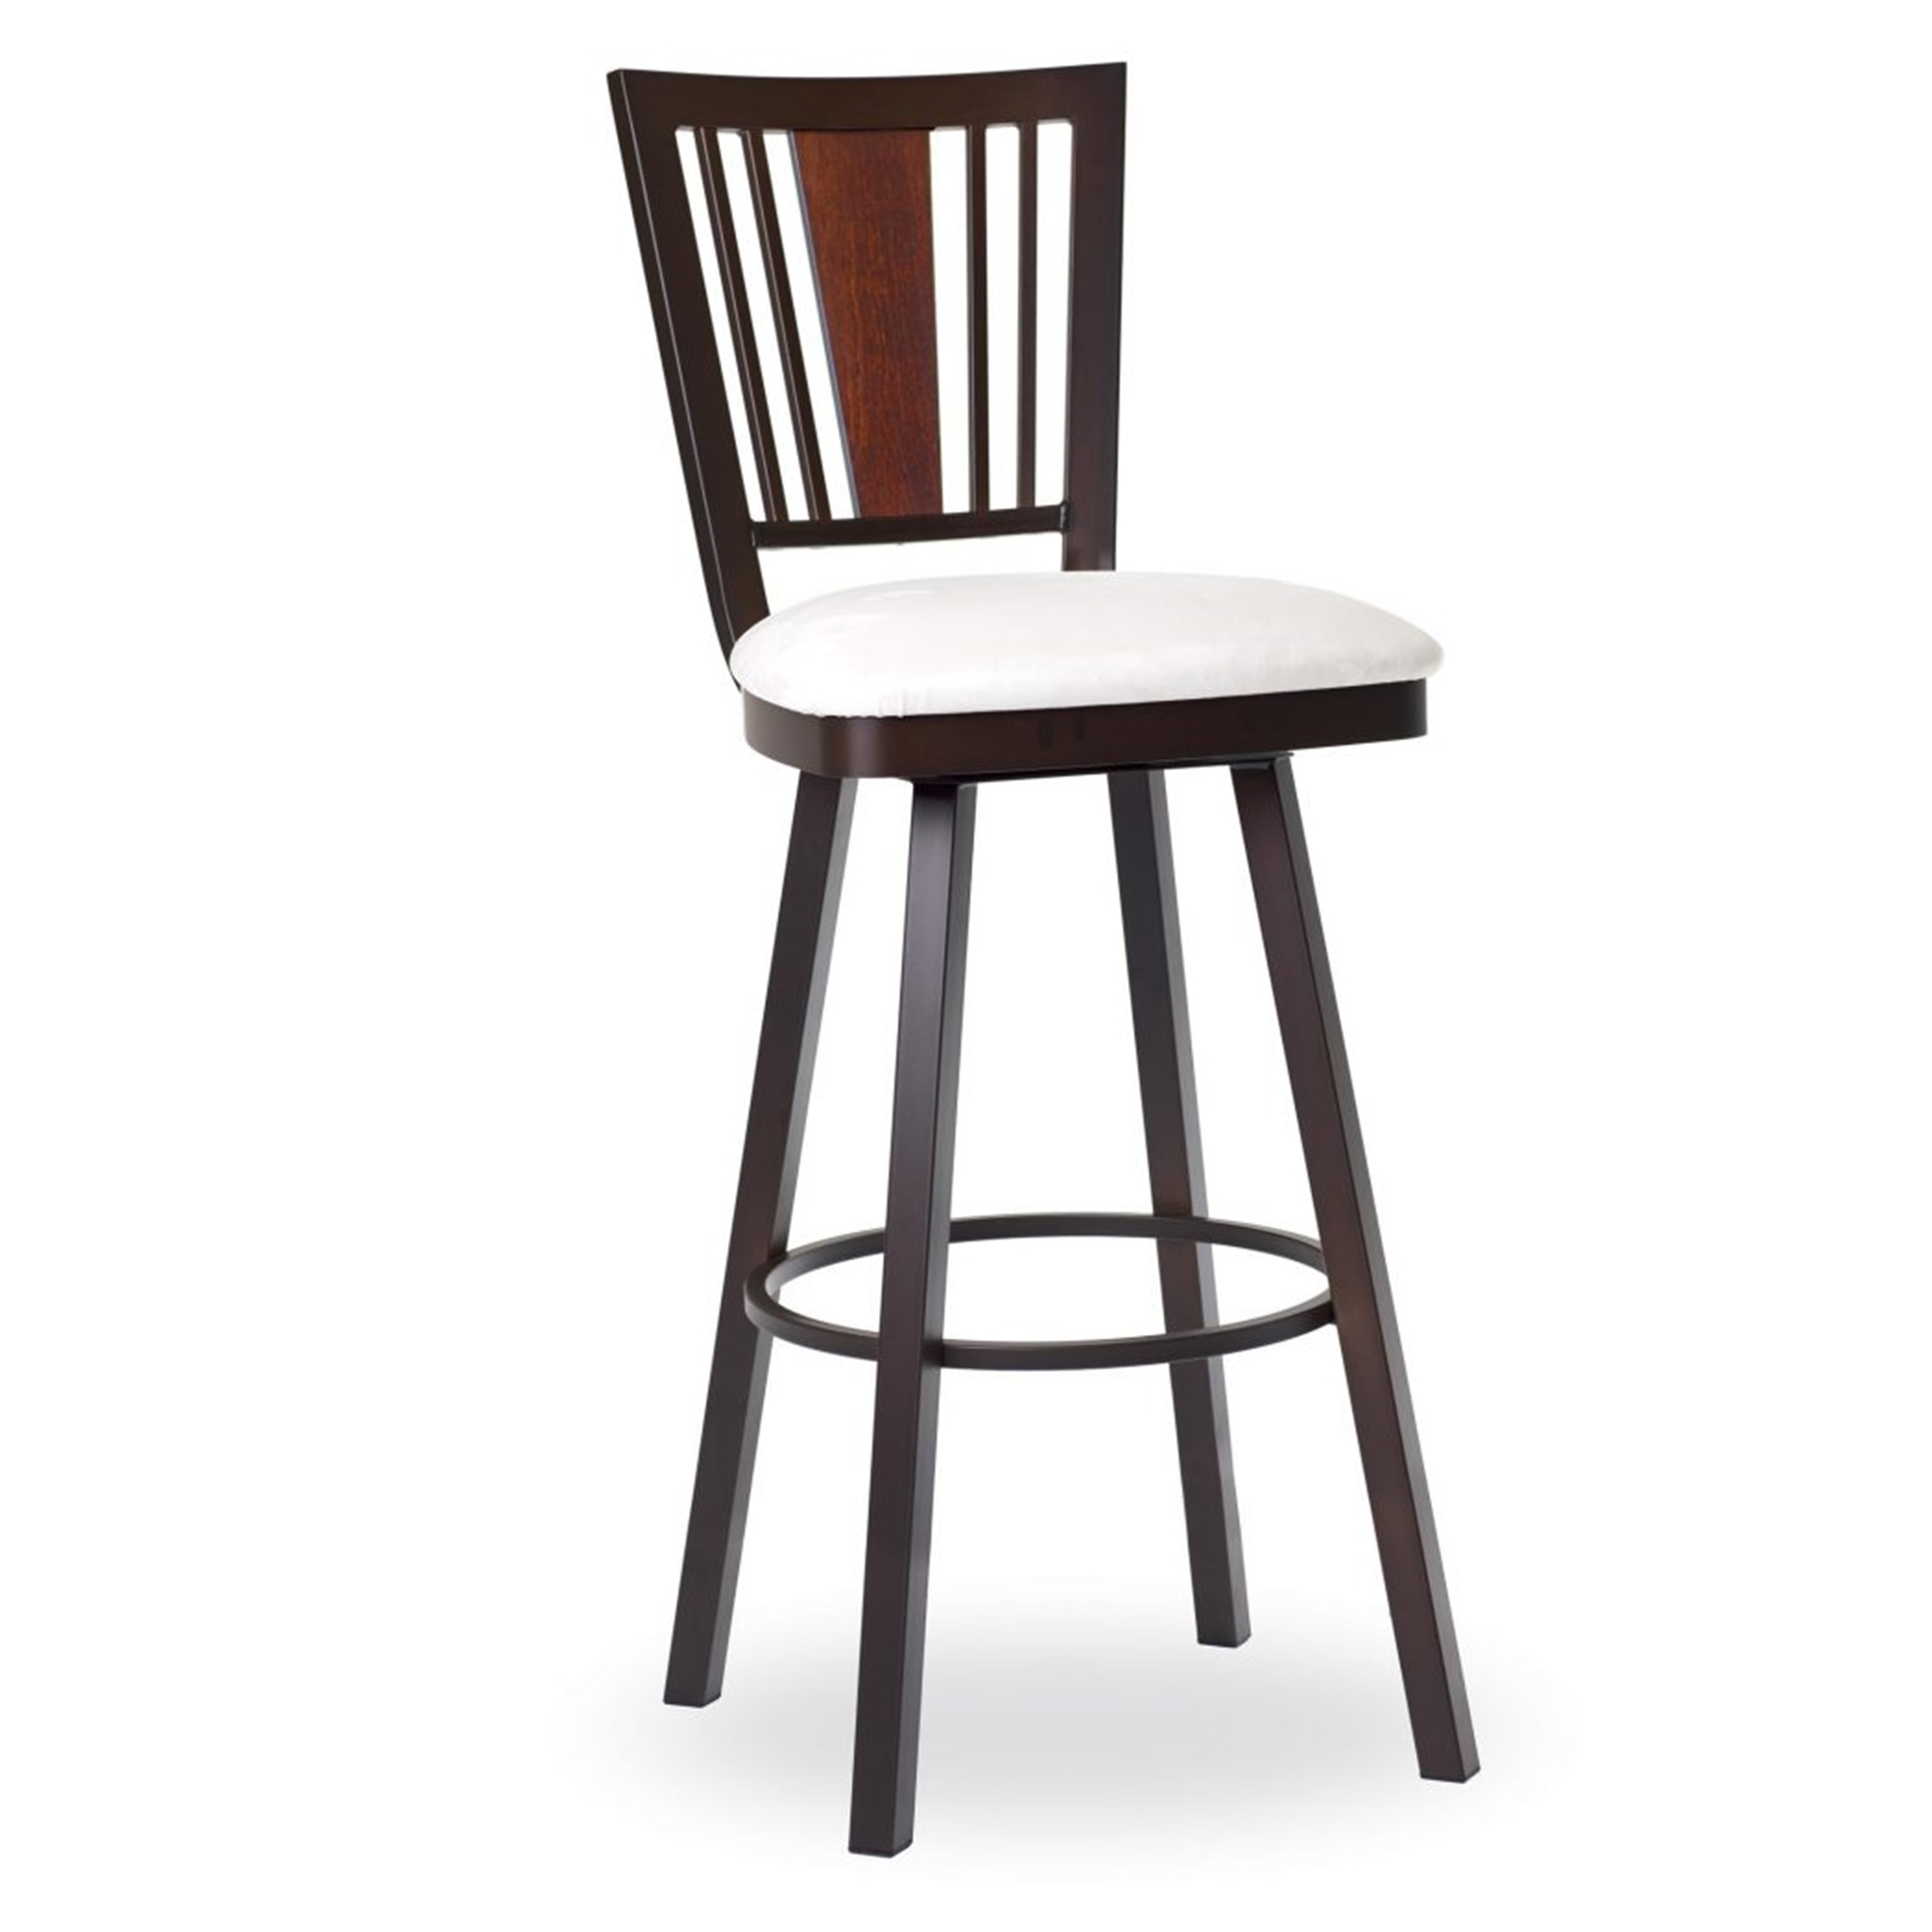 Chairs Restaurant Chairs Stools Amp Booths Swivel